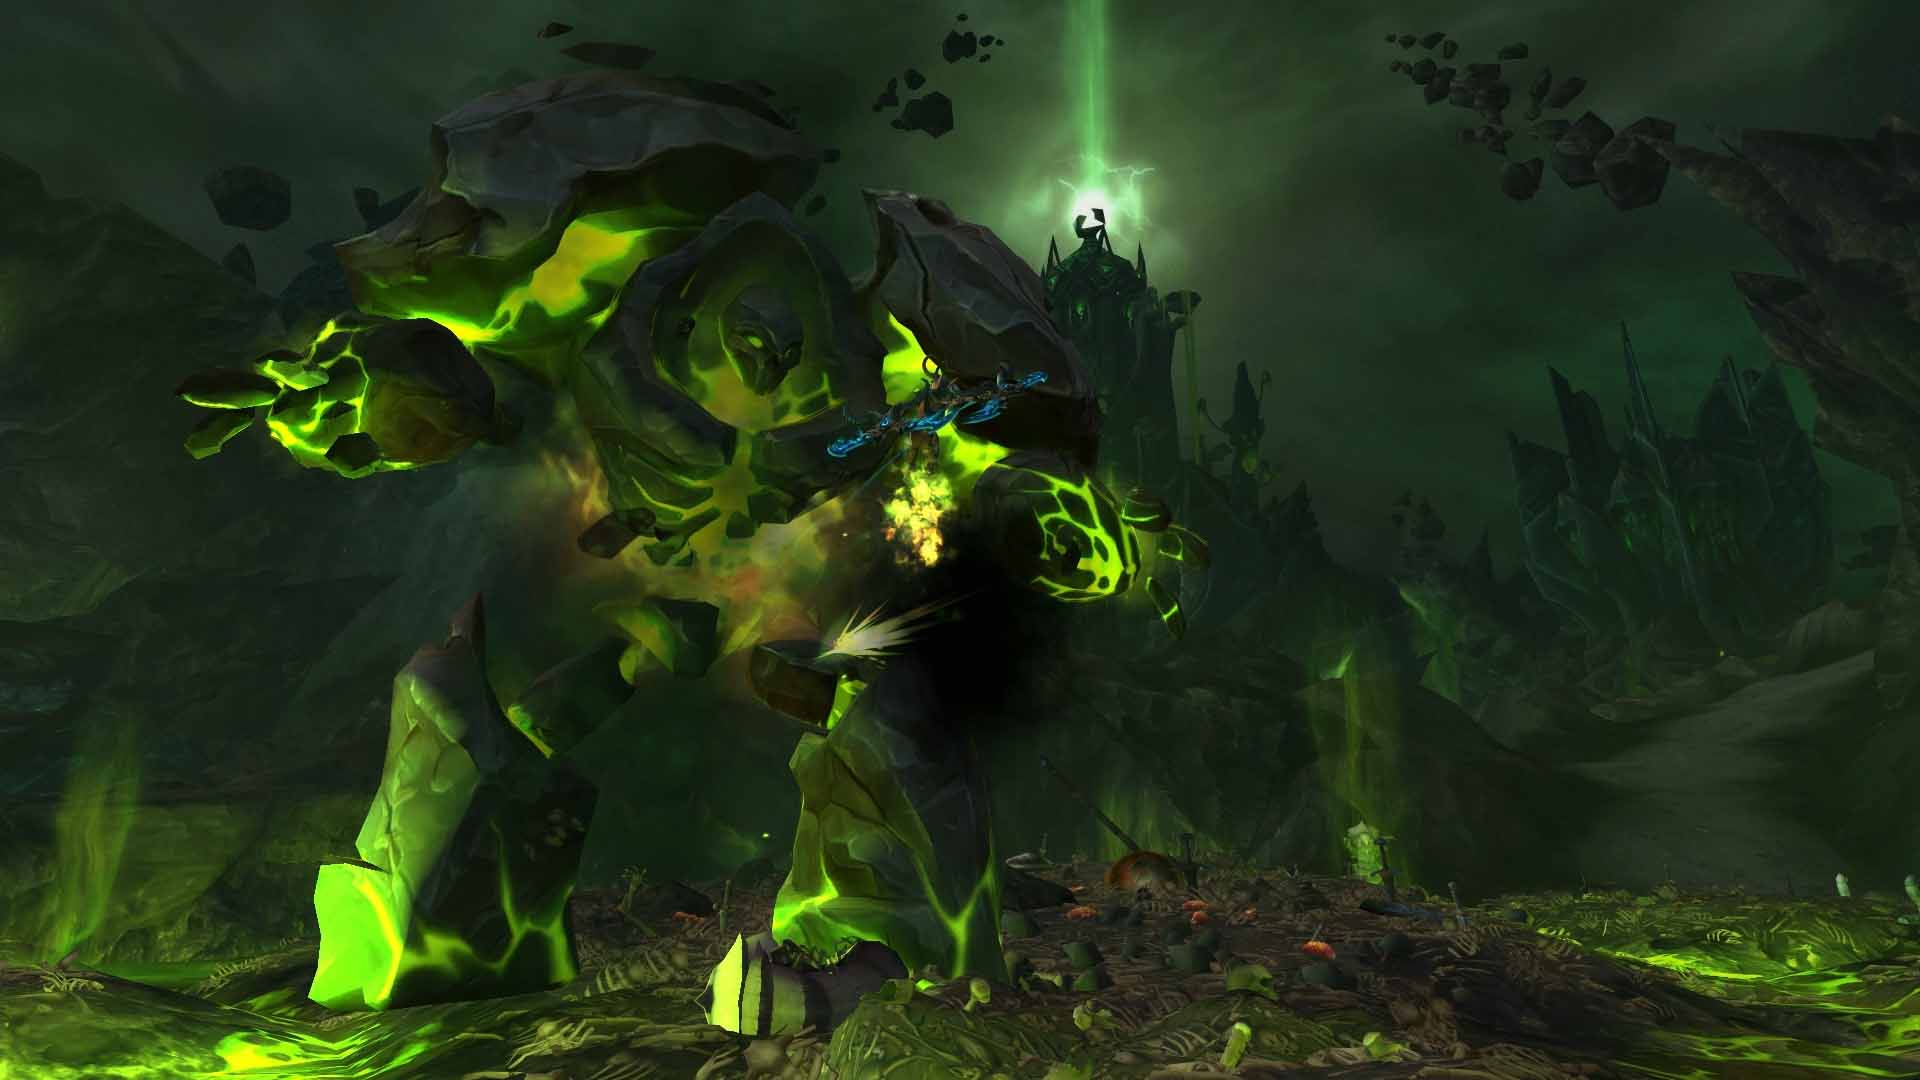 Llega La Actualización Tumba De Sargeras A World Of Warcraft